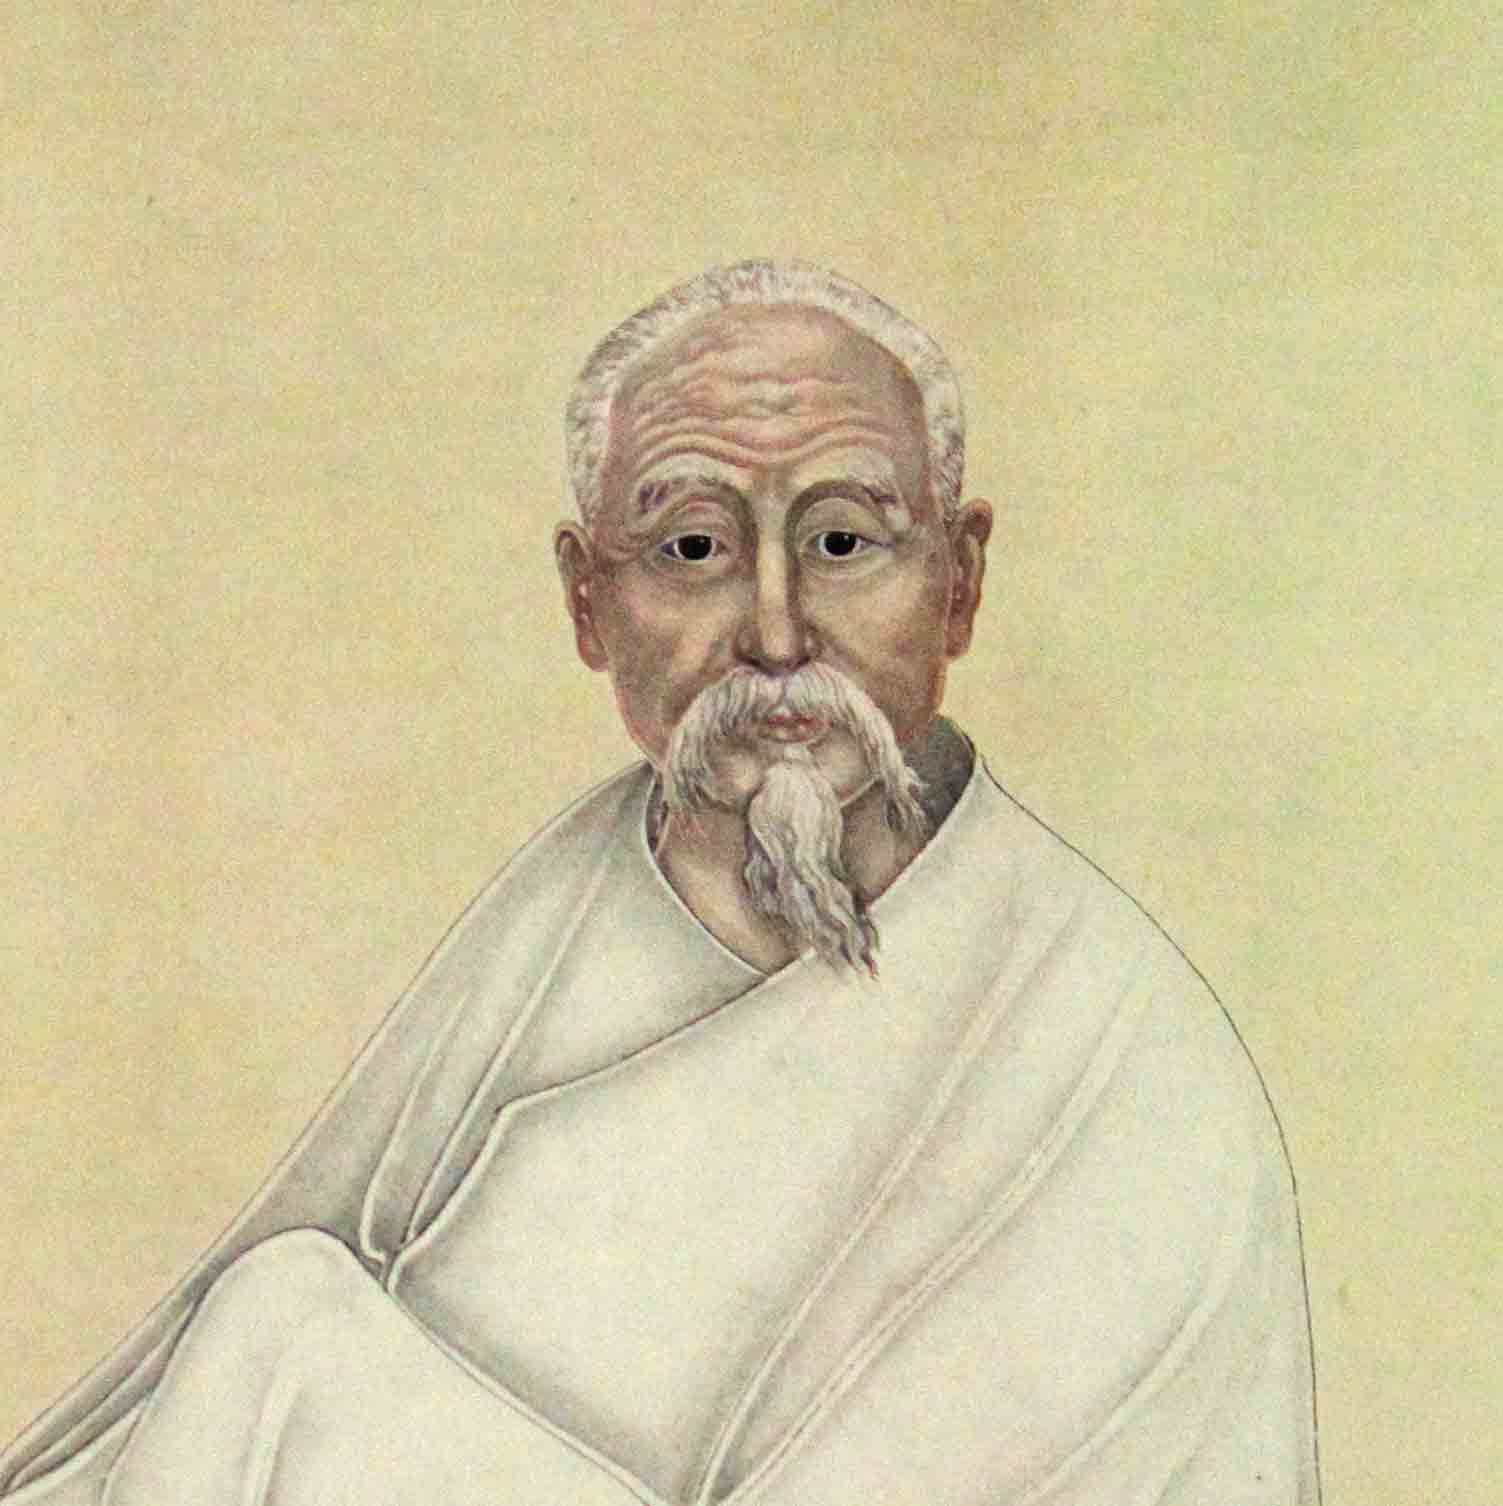 Wang Fengyi painted portrait.